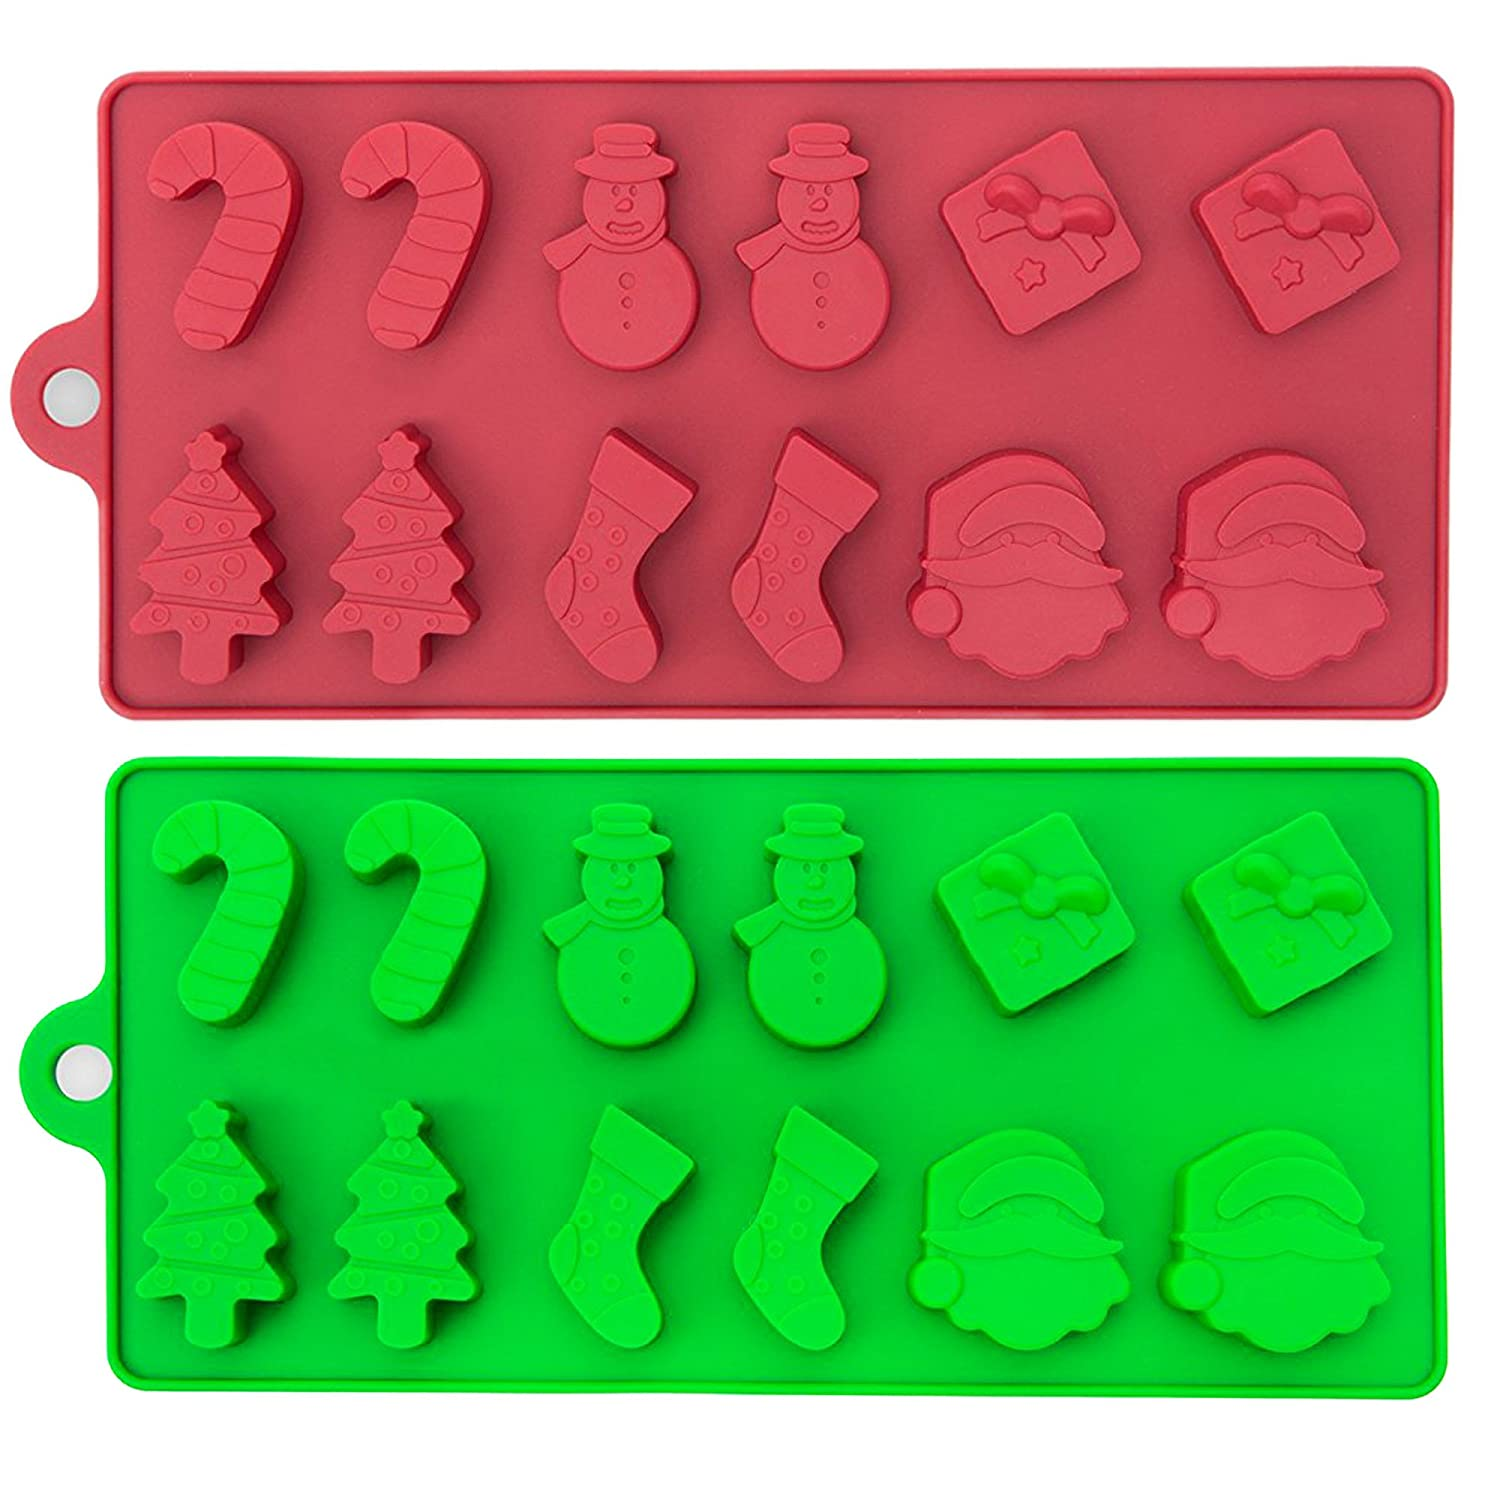 2 Pack of Novelty Festive Silicone Moulds – 6 Christmas Theme Shapes – Ideal for Making Seasonal Cakes, Chocolate, Muffins, Biscuits, Ice Cubes, Models and Candles The Twiddlers